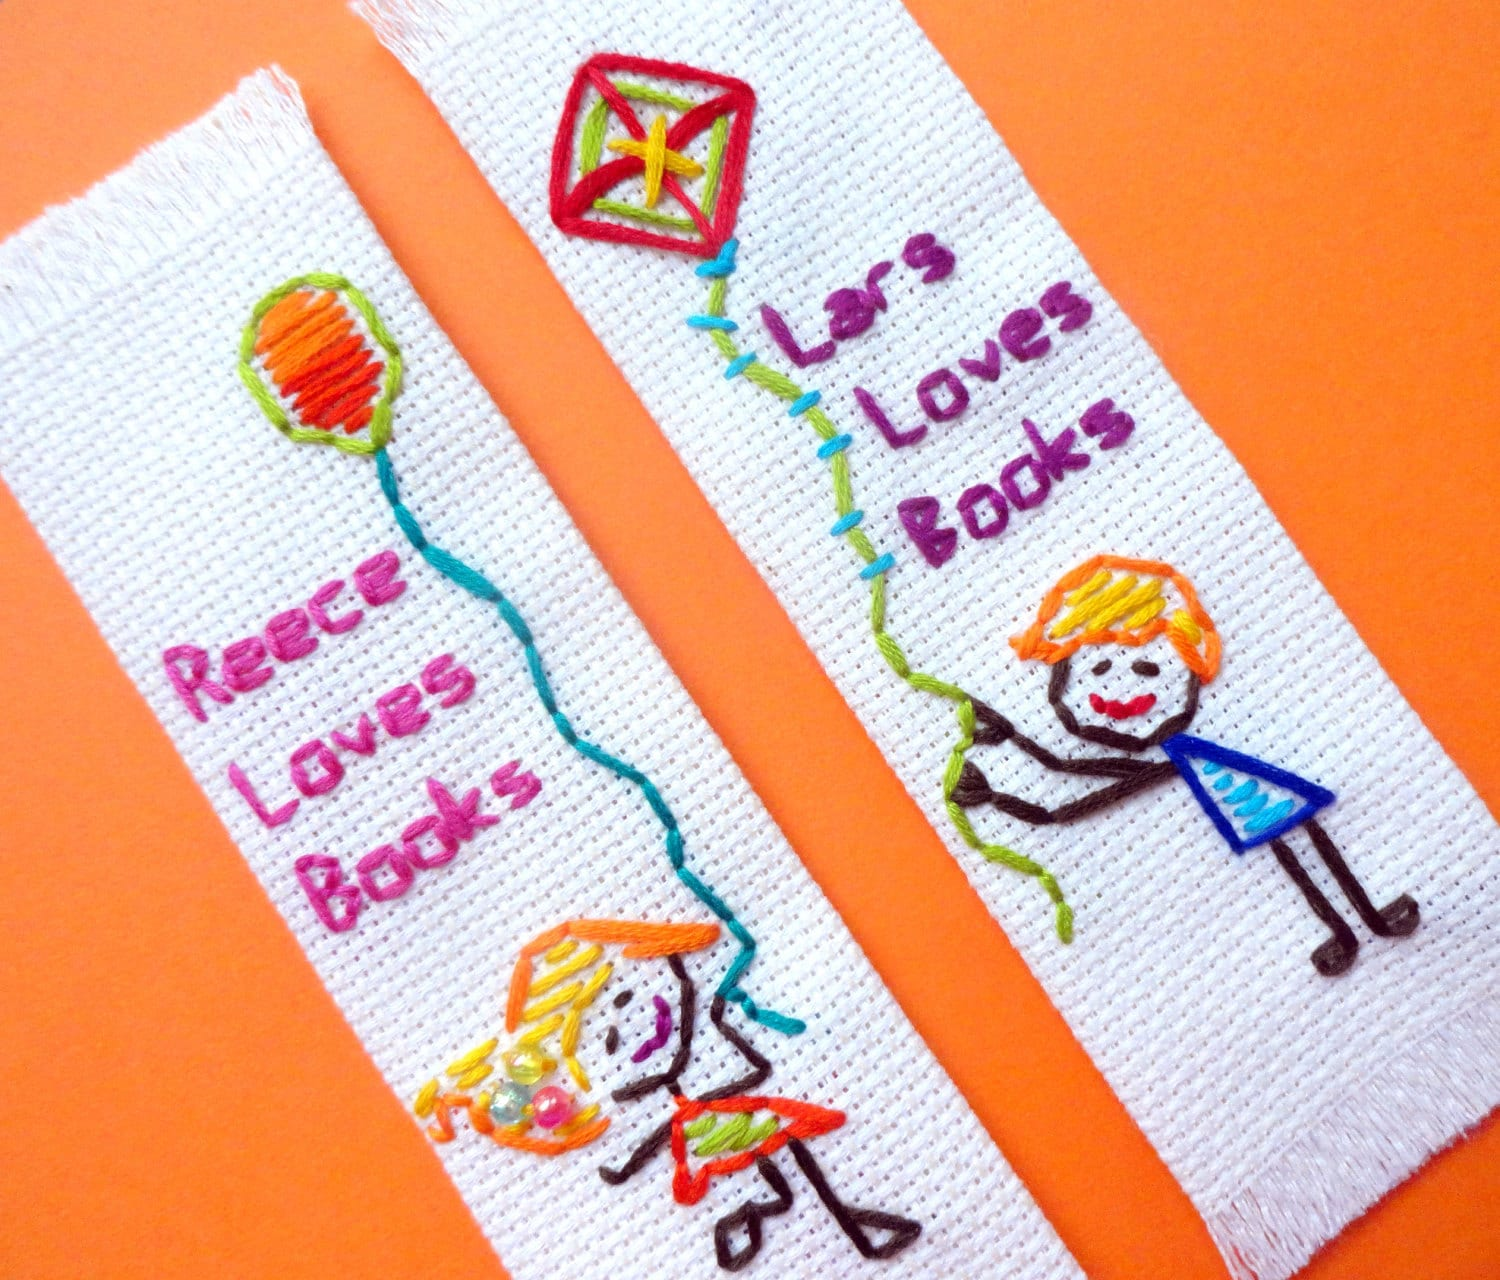 Craft or Die - Personalized handmade bookmark for kids